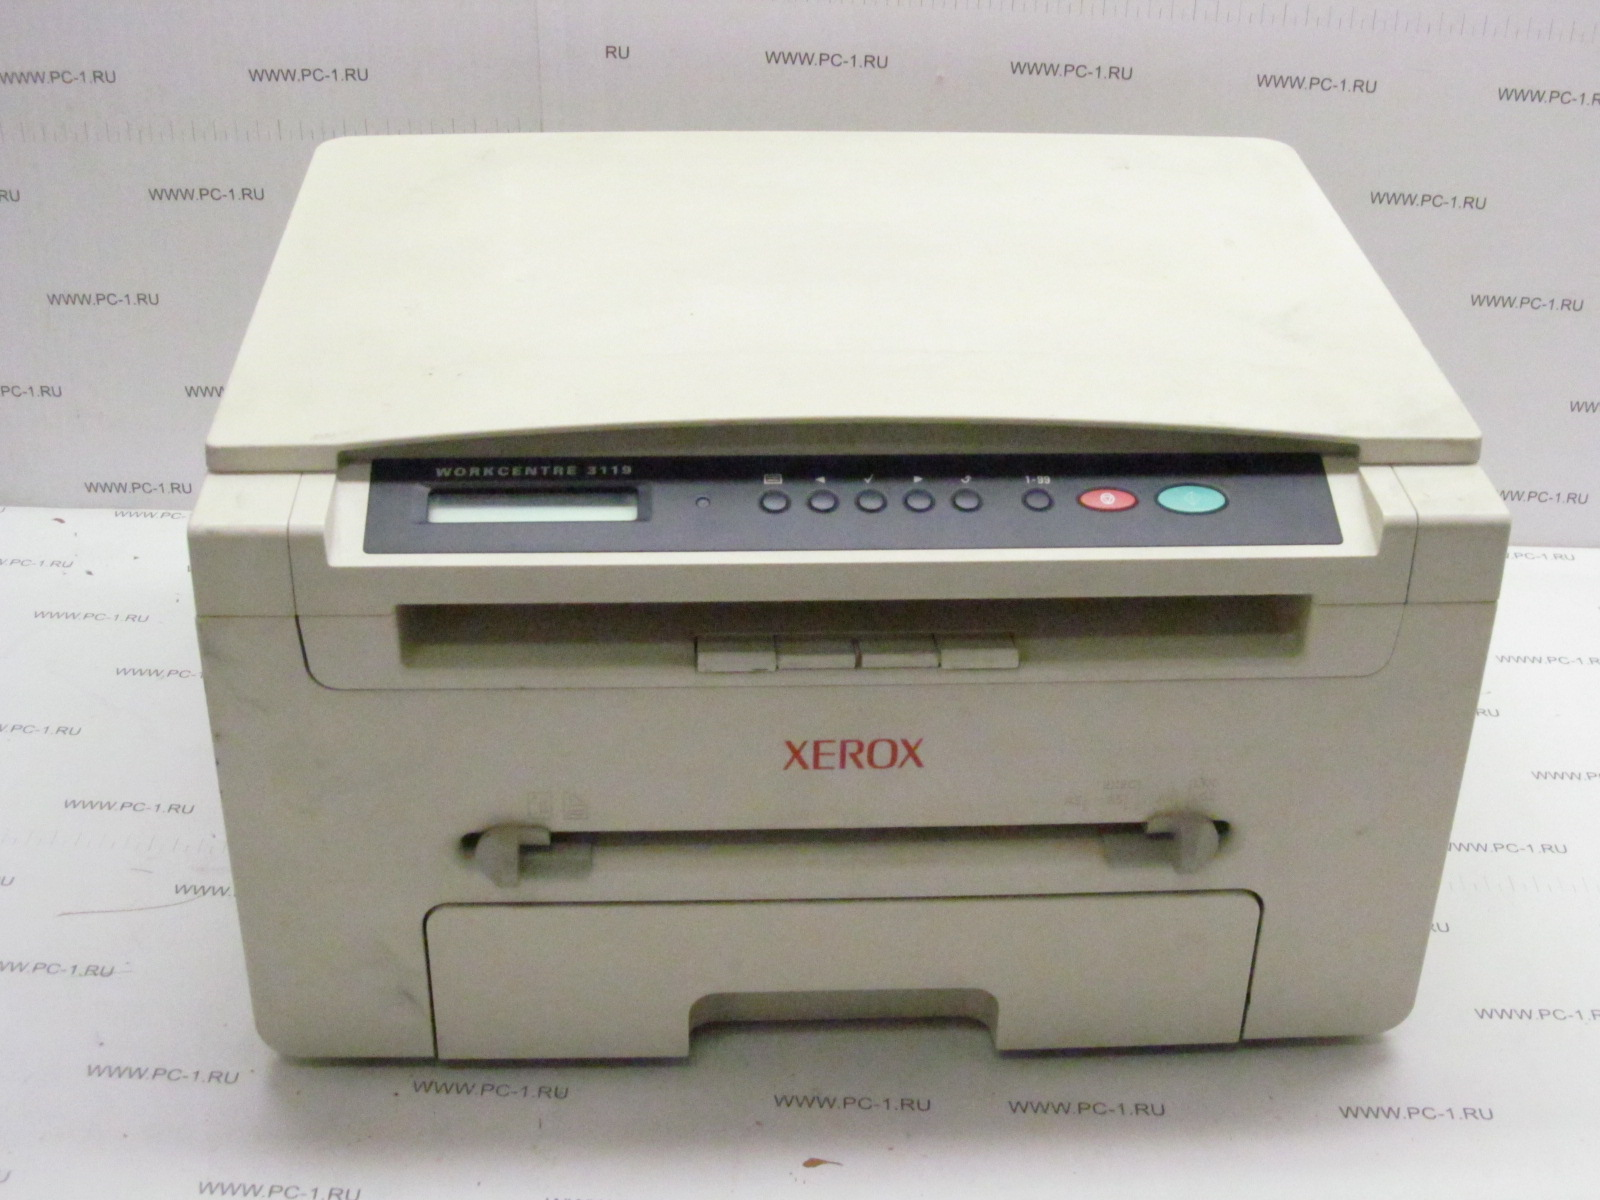 Xerox workcentre 3119 driver xp download